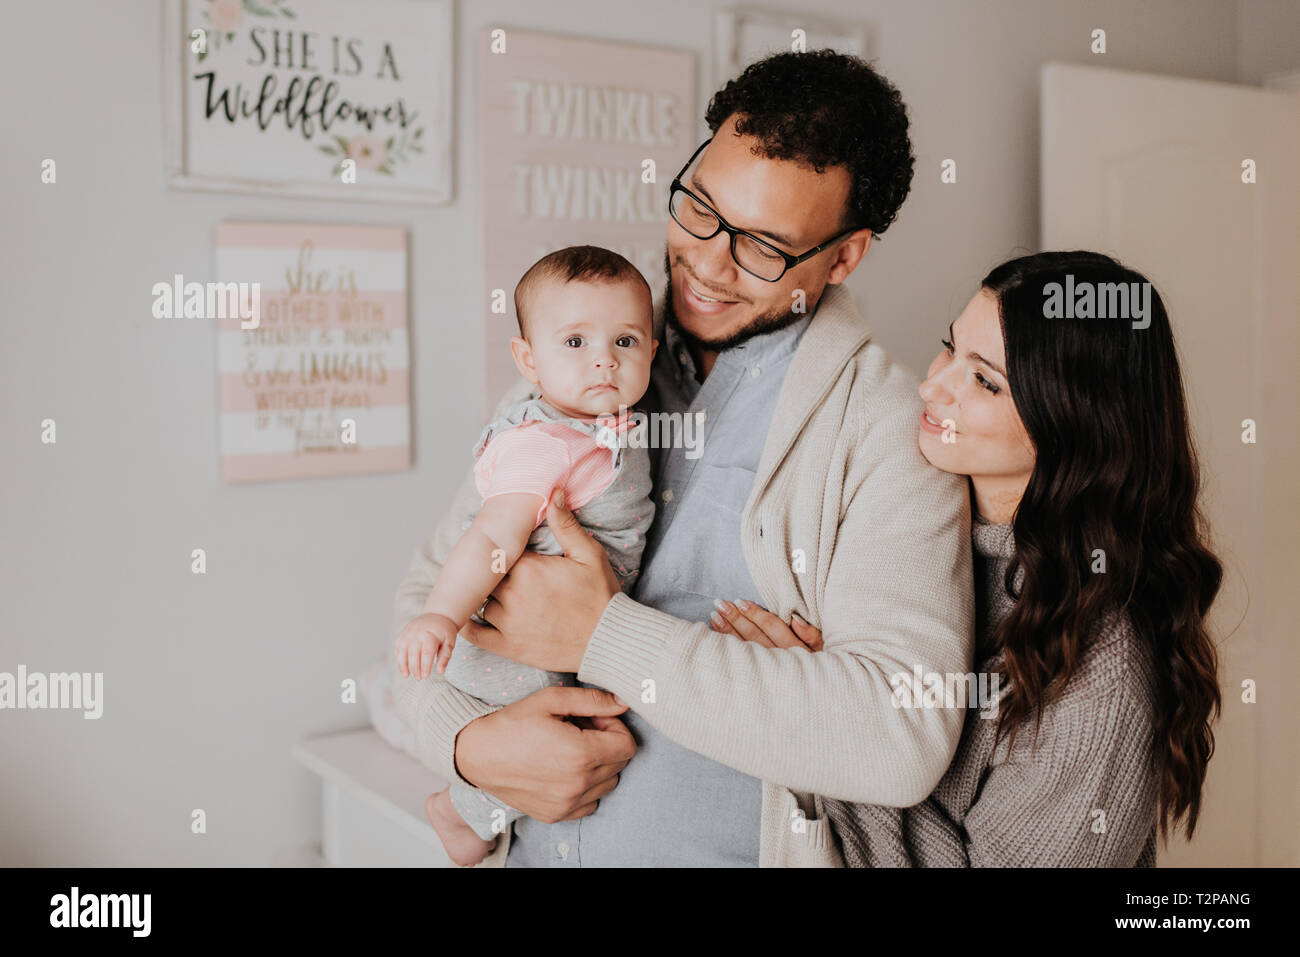 Couple with baby daughter in baby's room - Stock Image